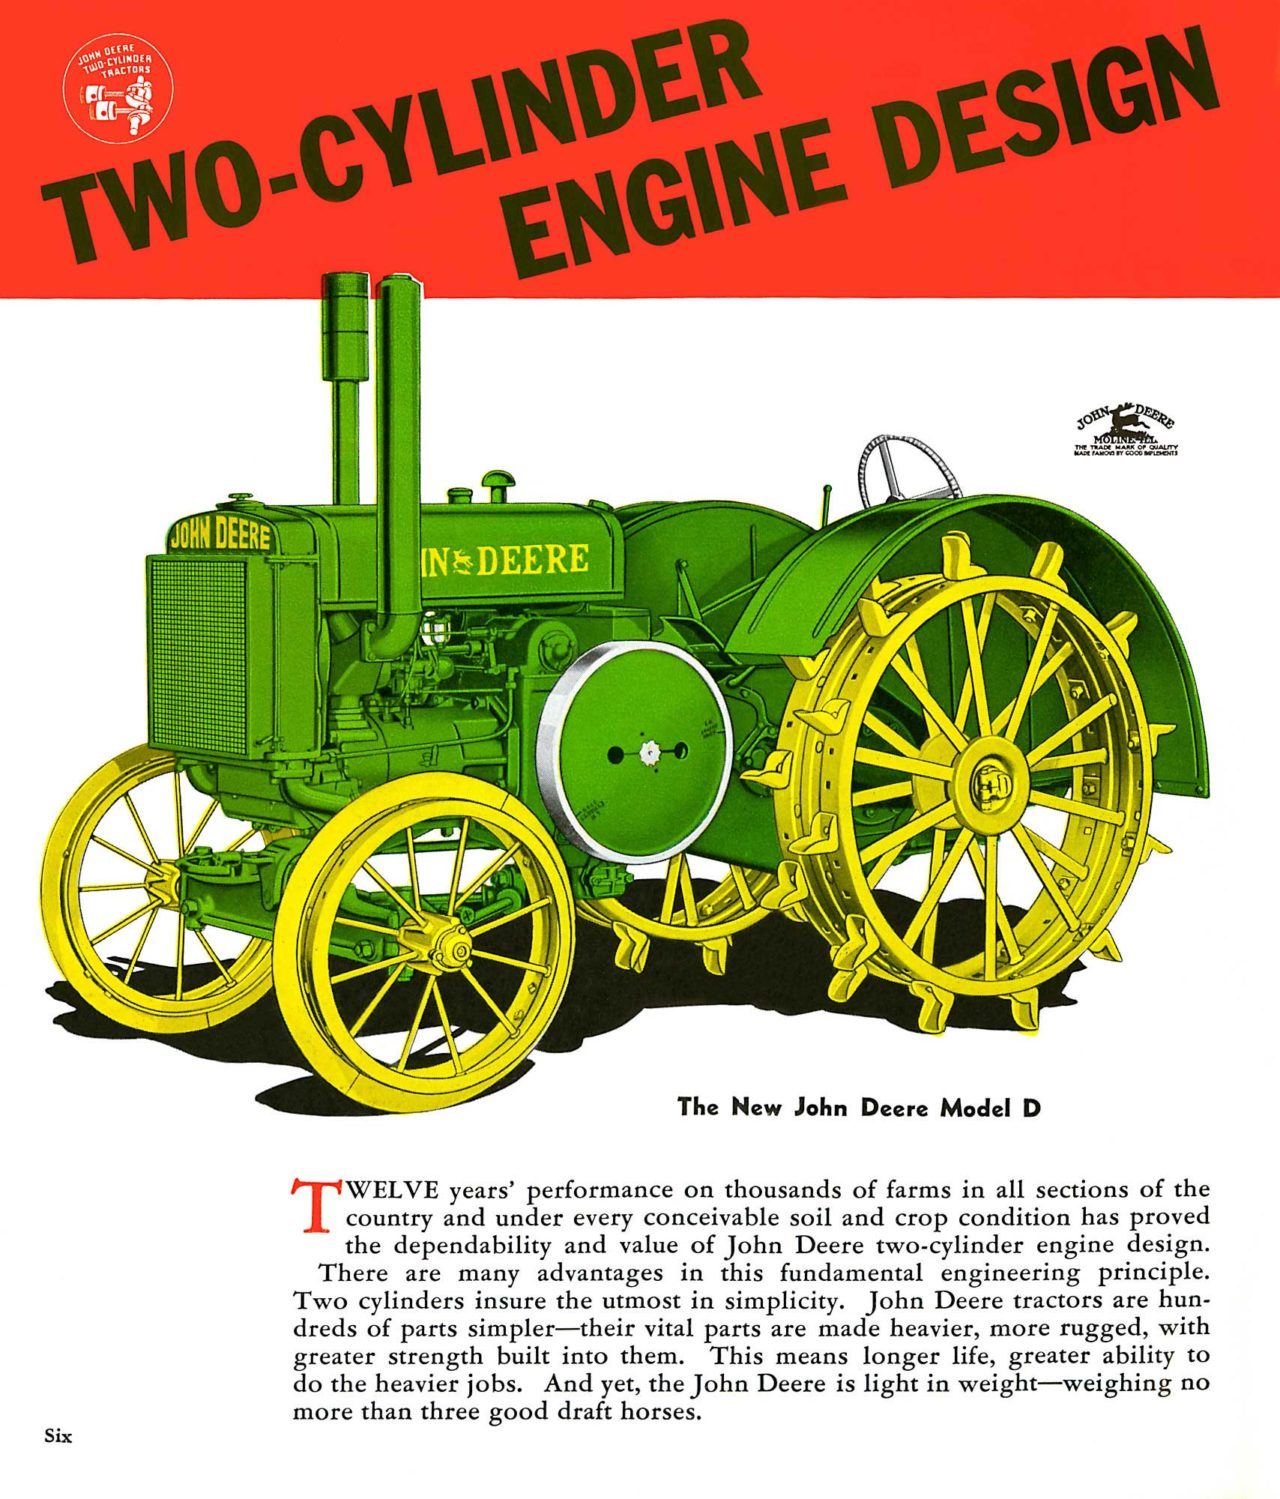 Why Two Cylinders? | The John Deere Journal